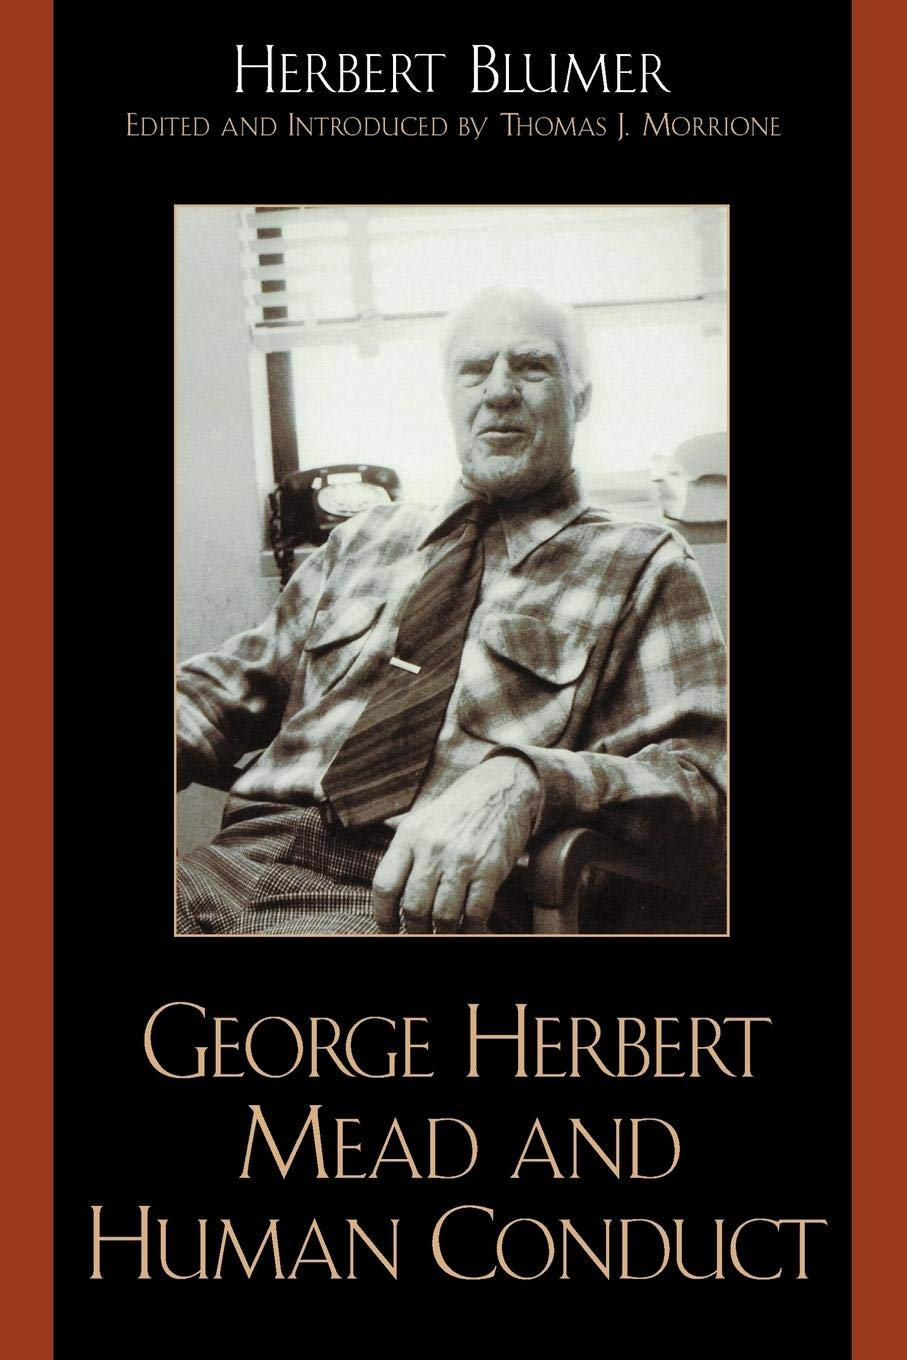 George Herbert Mead And Human Conduct Herbert Blumer Thomas J